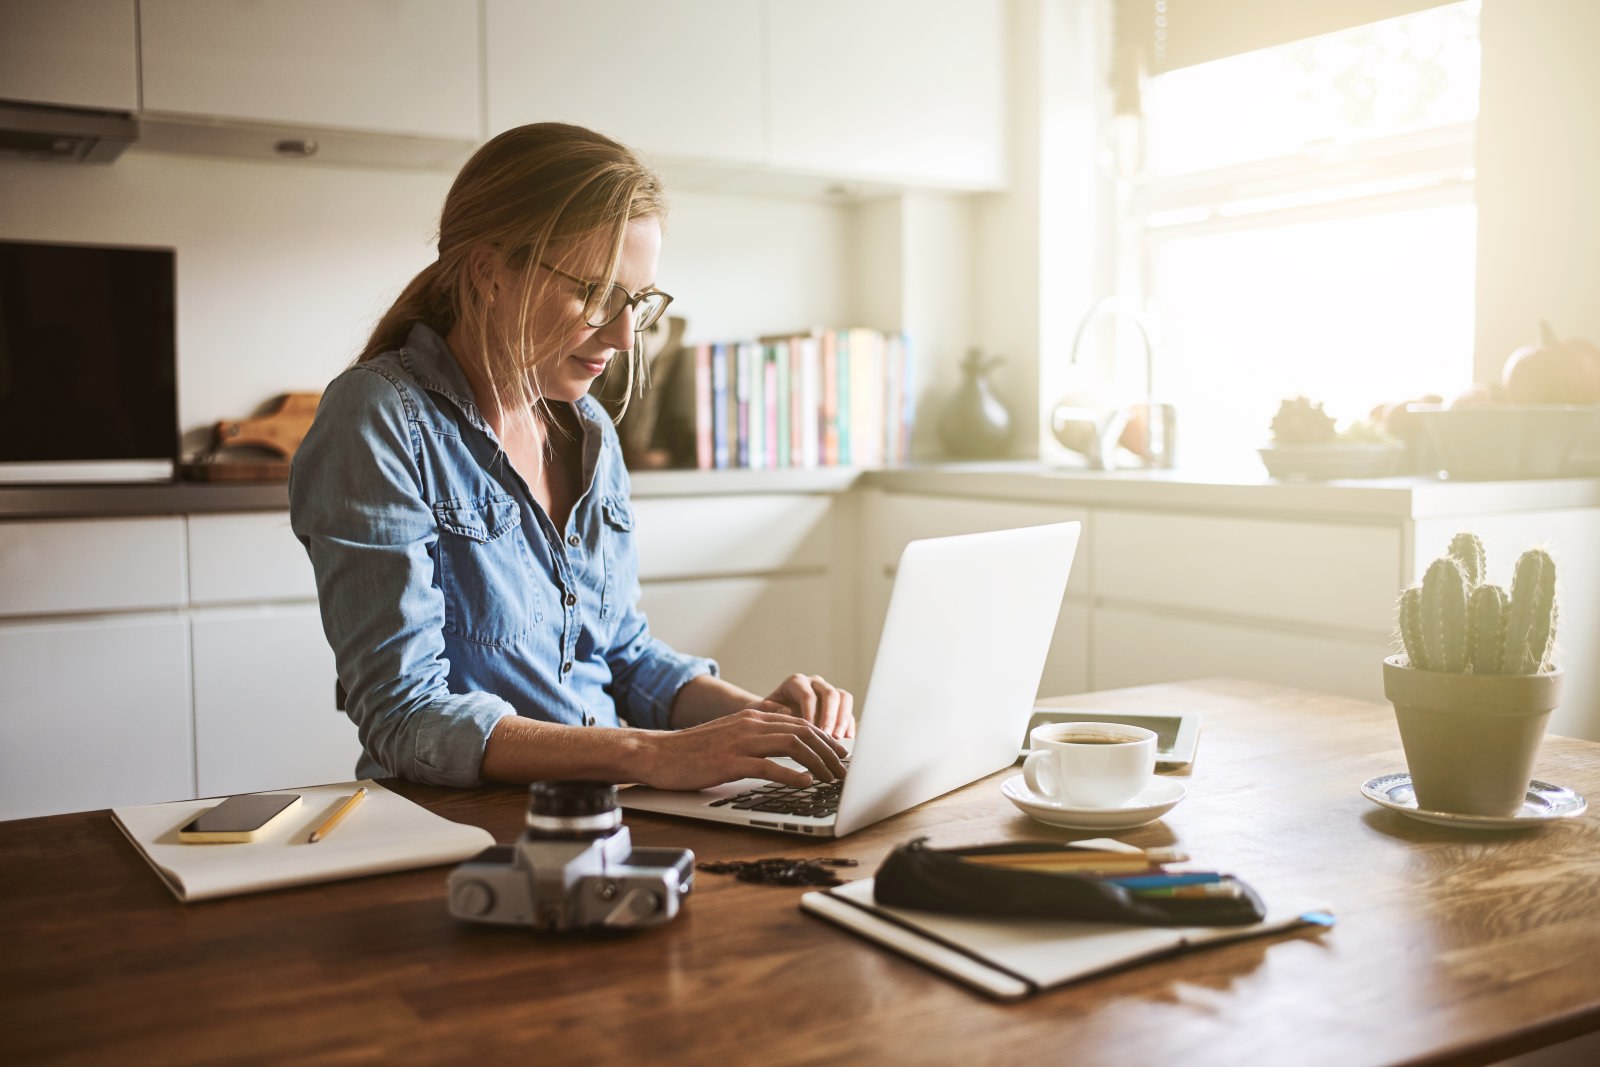 Making money from home doesn't require you to get an extra job. Instead, opt for a side gig that can boost your income while giving you the flexibility you need and want. Here are 119 legitimate ways to do just that, all while using the skills you already have.